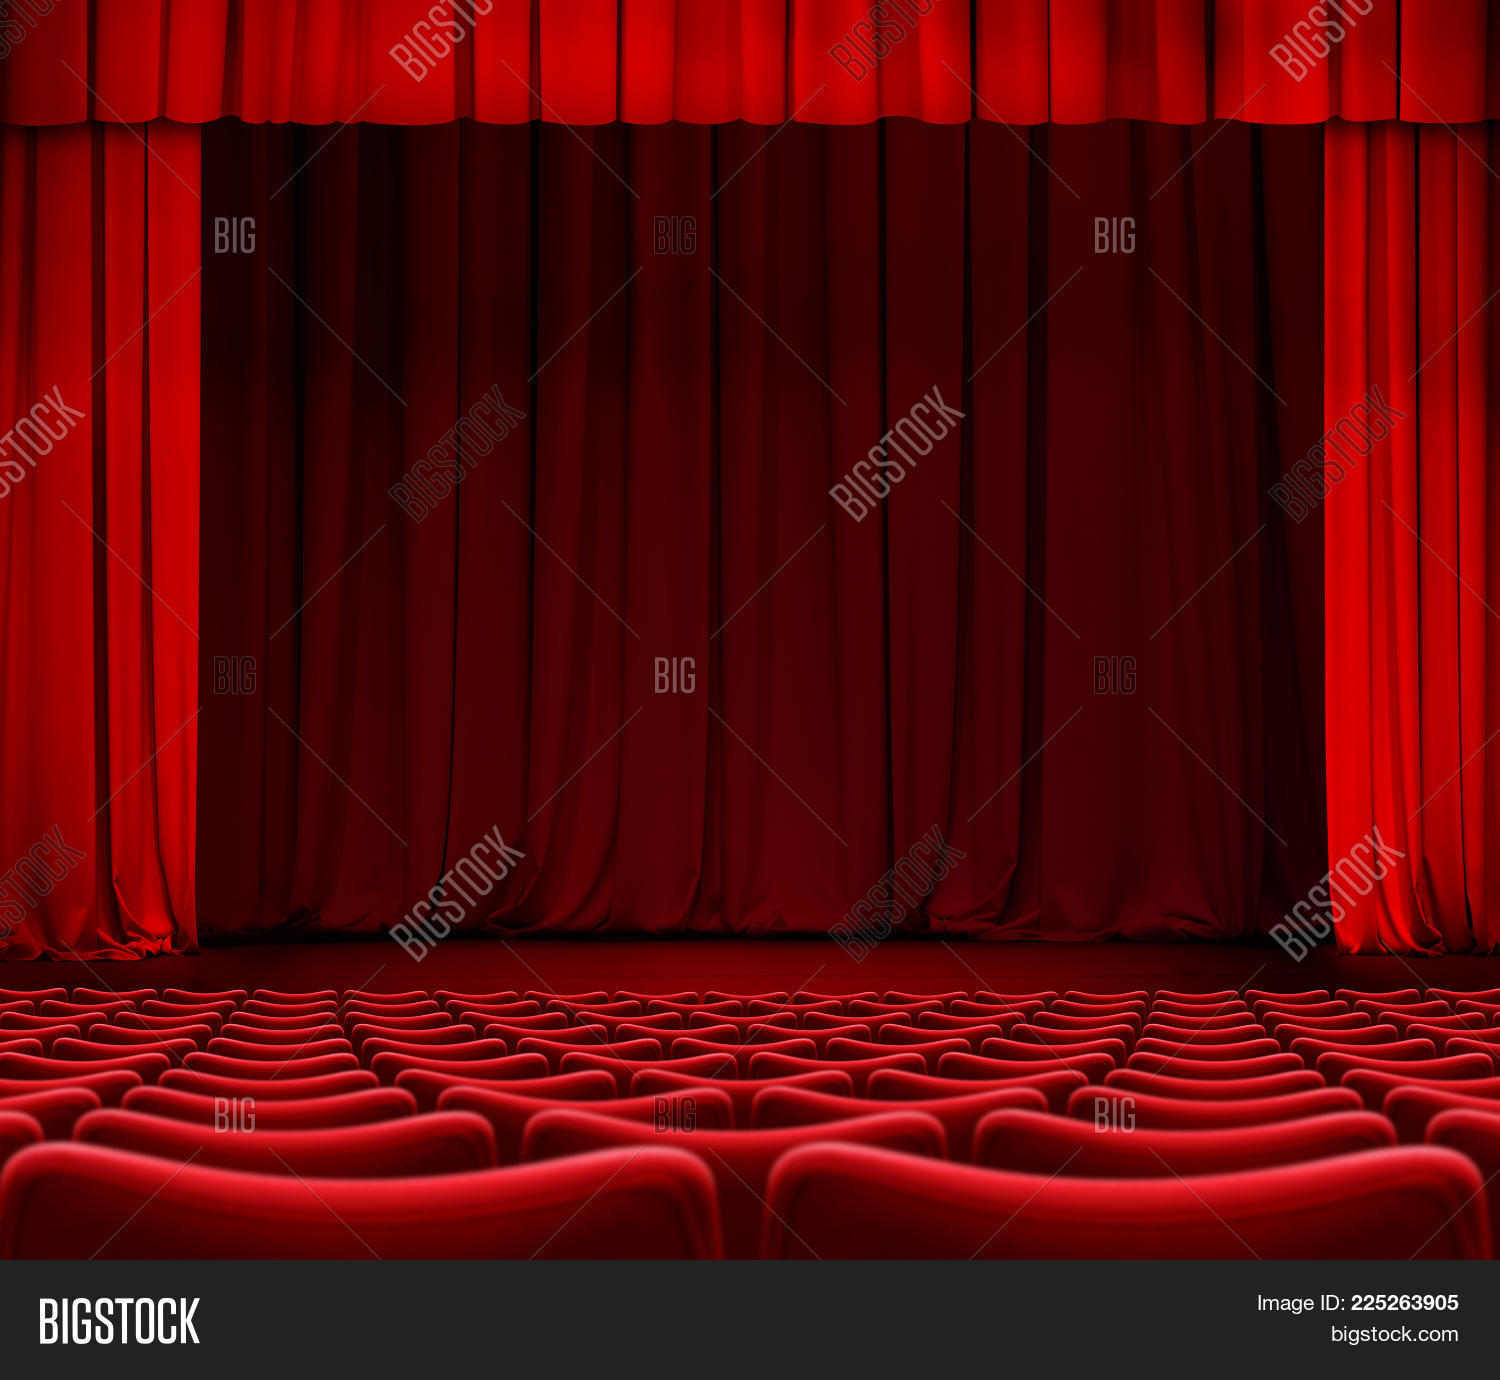 Red curtain on movie powerpoint template red curtain on movie entertainment powerpoint template 60 slides toneelgroepblik Choice Image